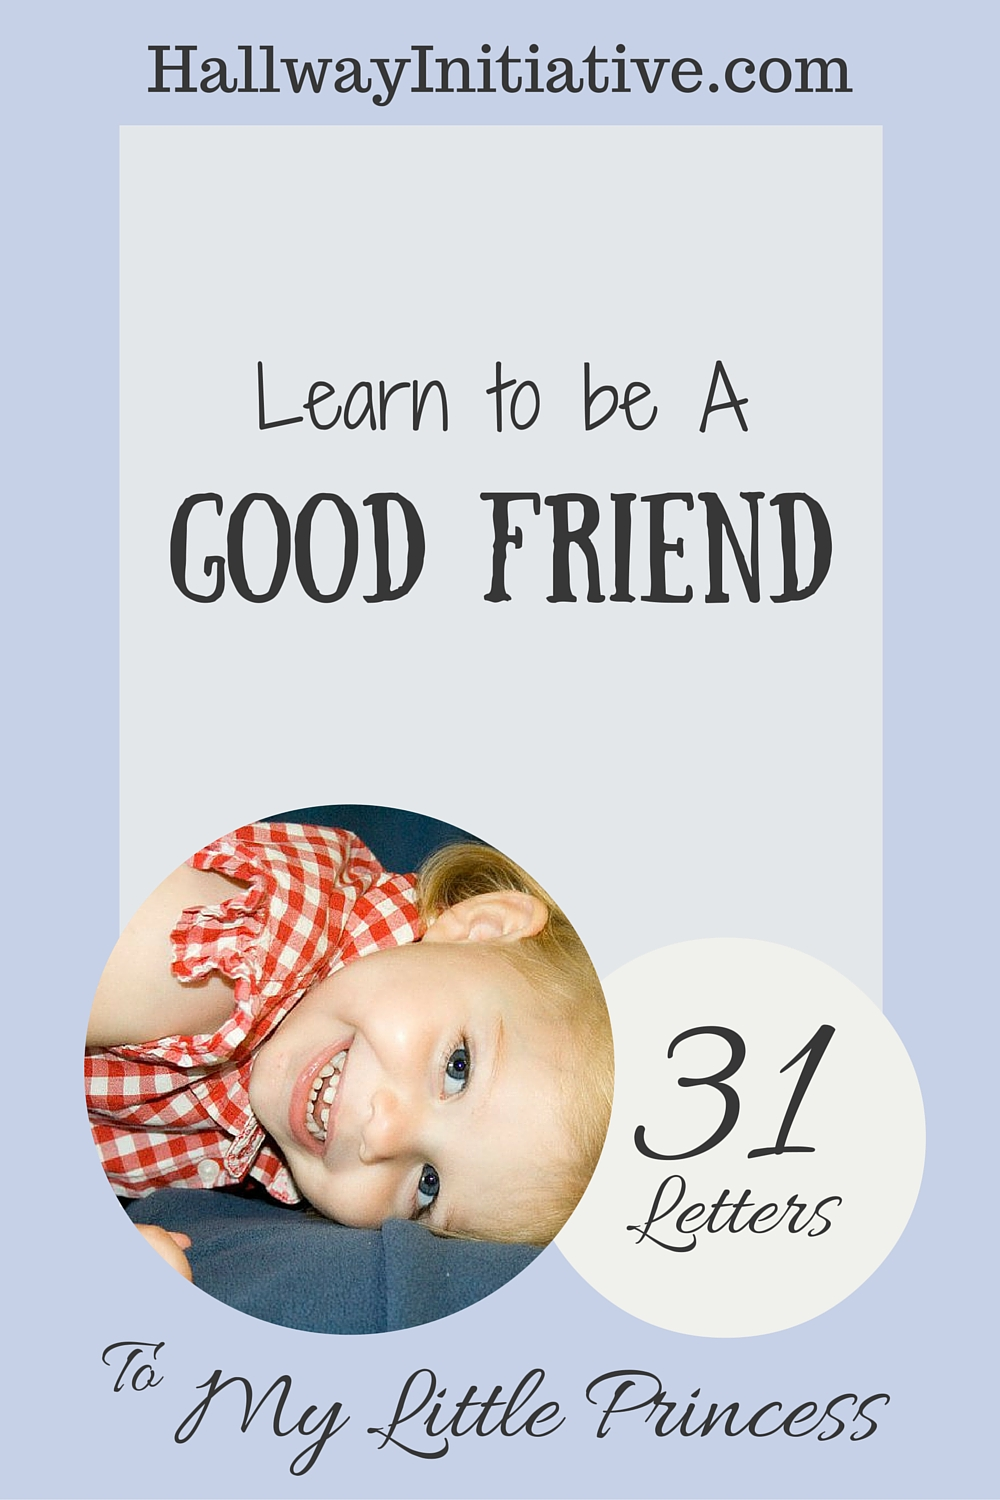 Learn to be a good friend